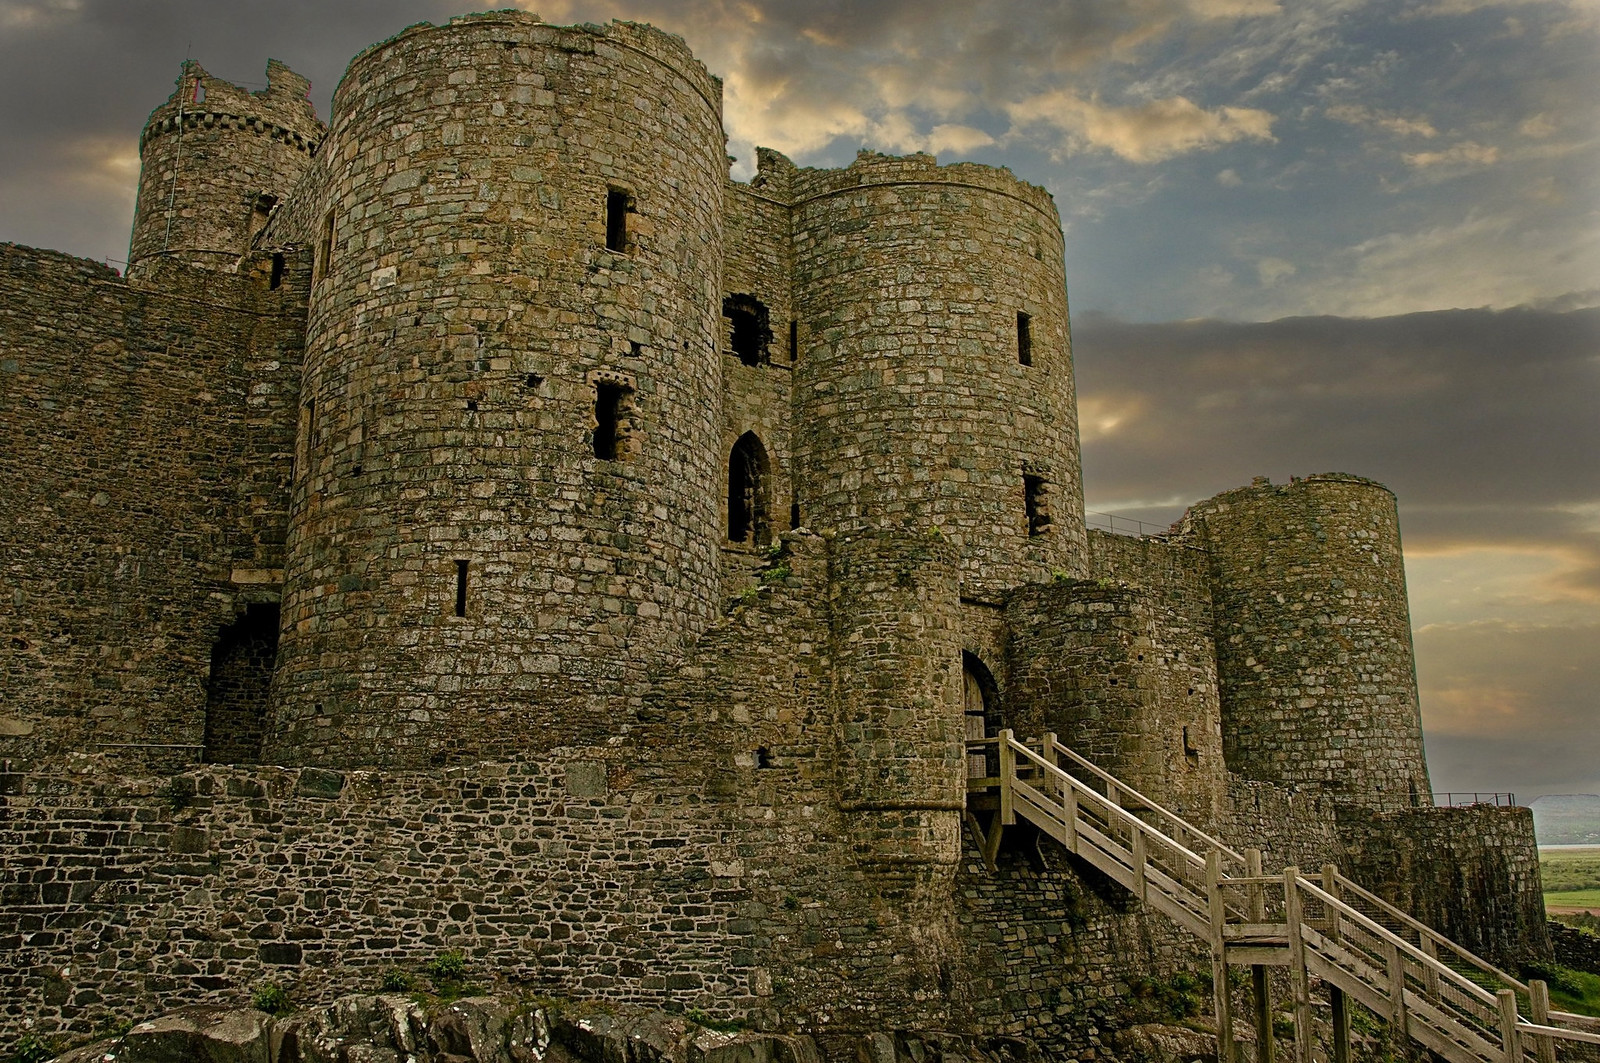 Harlech Castle. Credit Gouldy, flickr